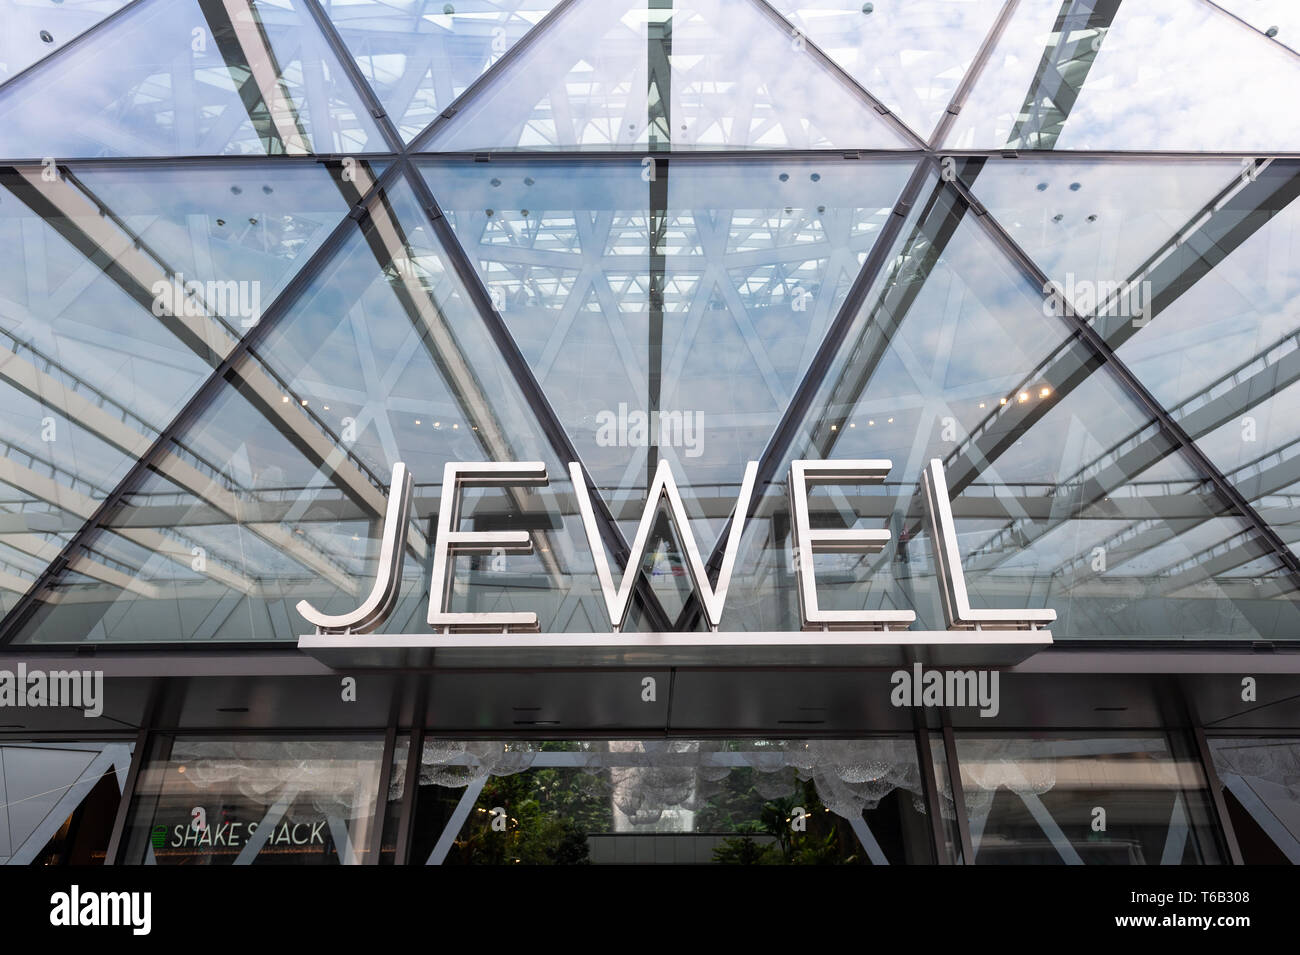 28.04.2019, Singapore, Republic of Singapore, Asia - Entrance to the new Jewel Terminal at Changi Airport, designed by Moshe Safdie Architects. - Stock Image